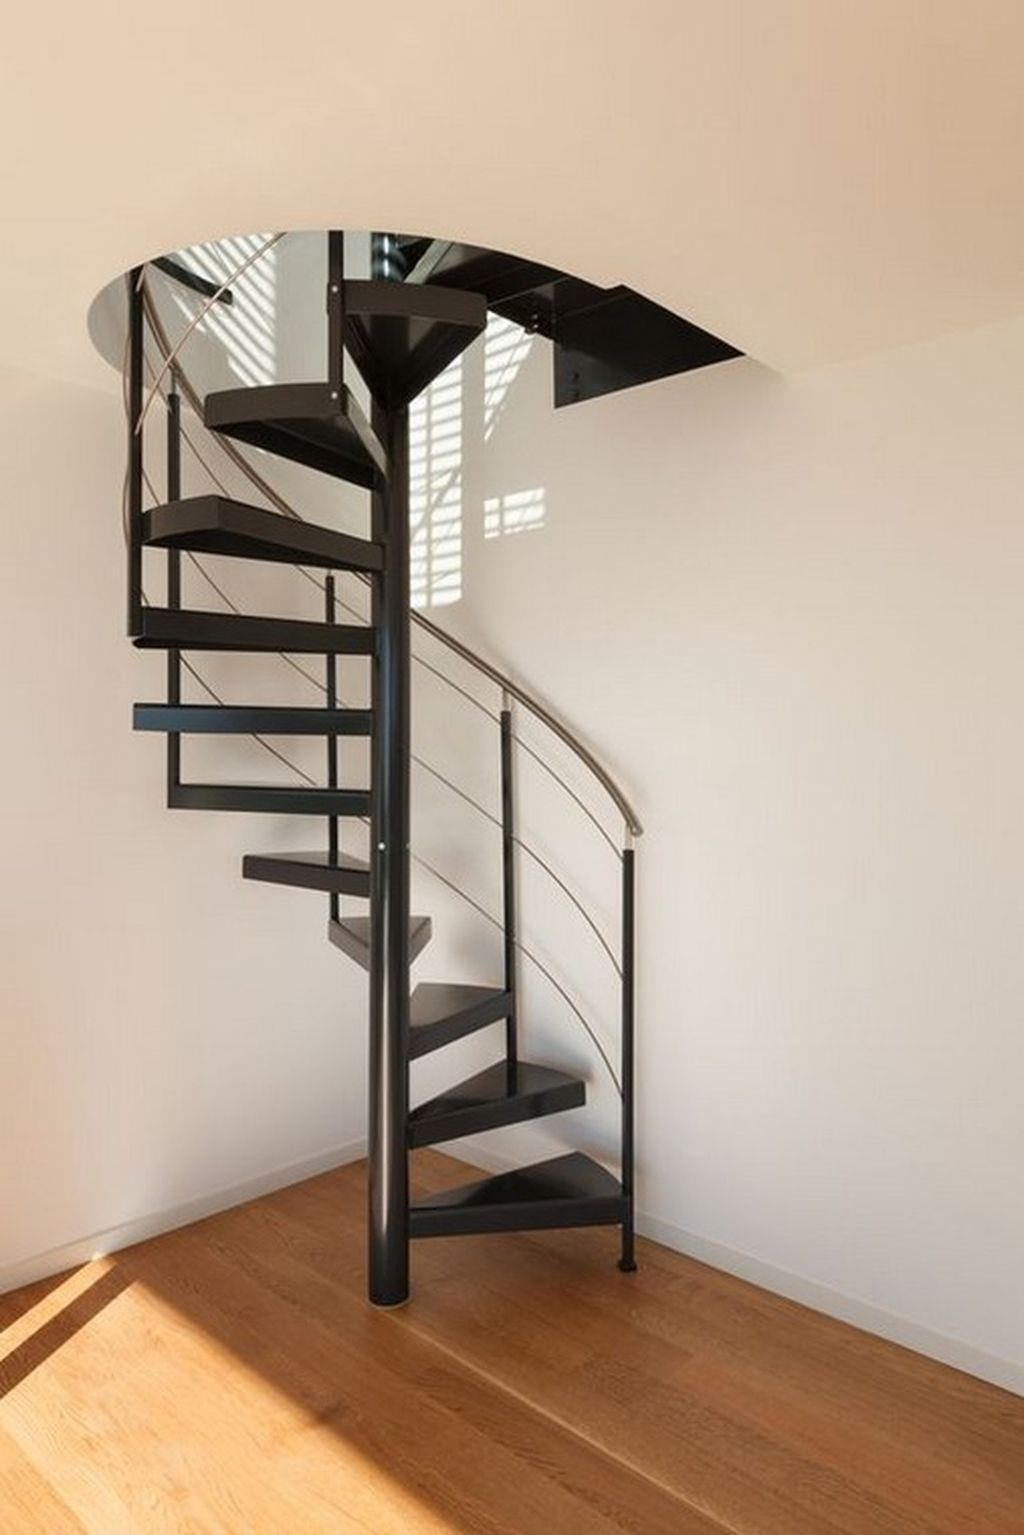 20 Incredible Stairs Design Ideas For The Attic To Try Small